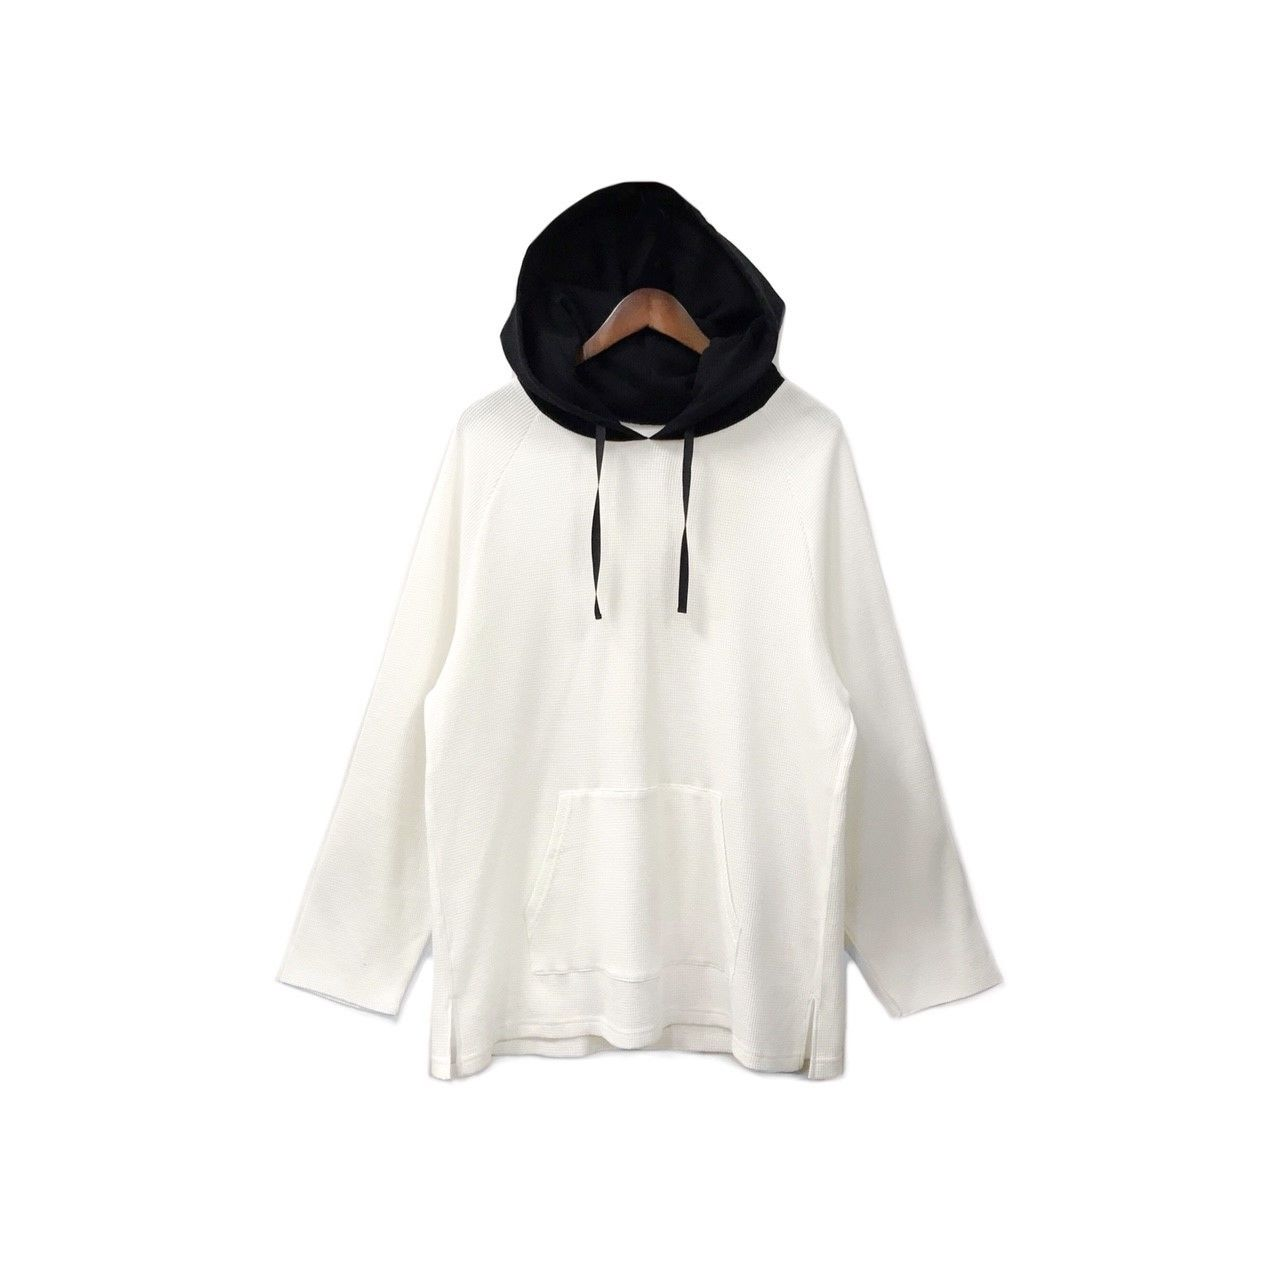 FC IRIE - Switching Thermal Parka / White・Black ?11000+tax